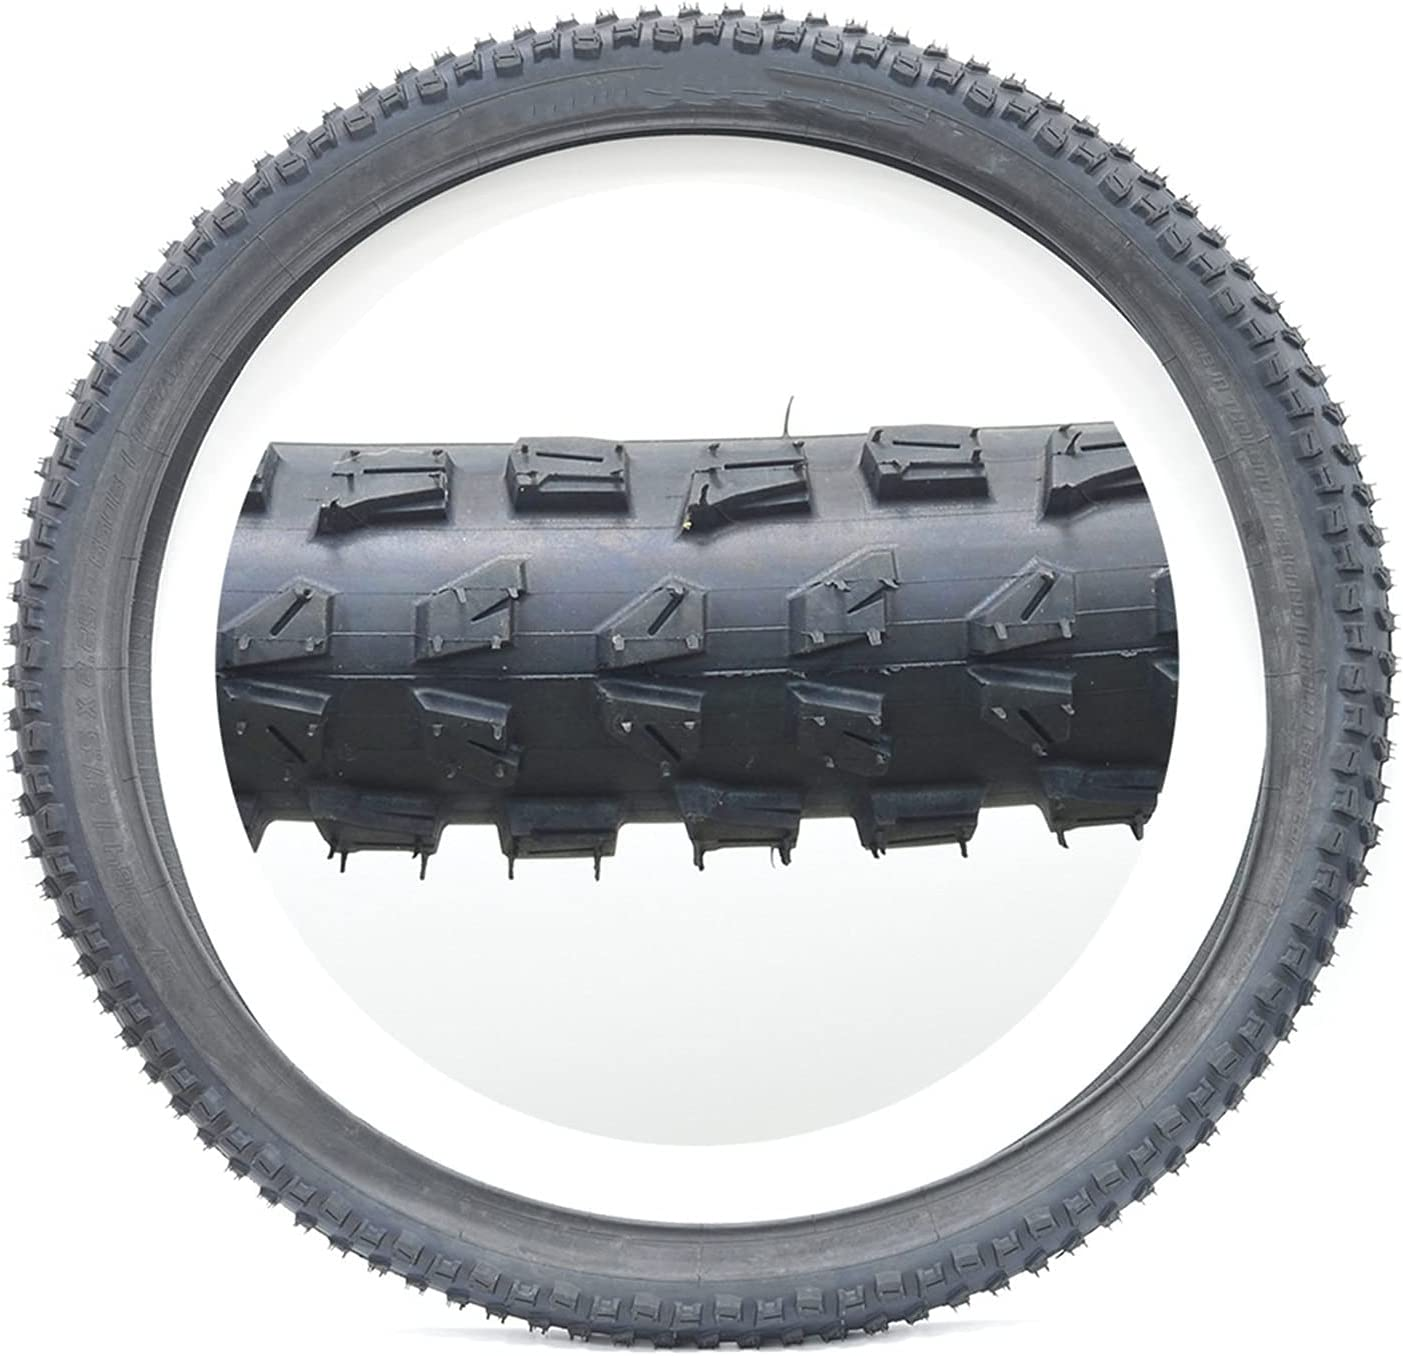 Cheap mail order specialty store FXDCY Bicycle Tires 27.5 2.25 Mountain Tube Inner Bike B free